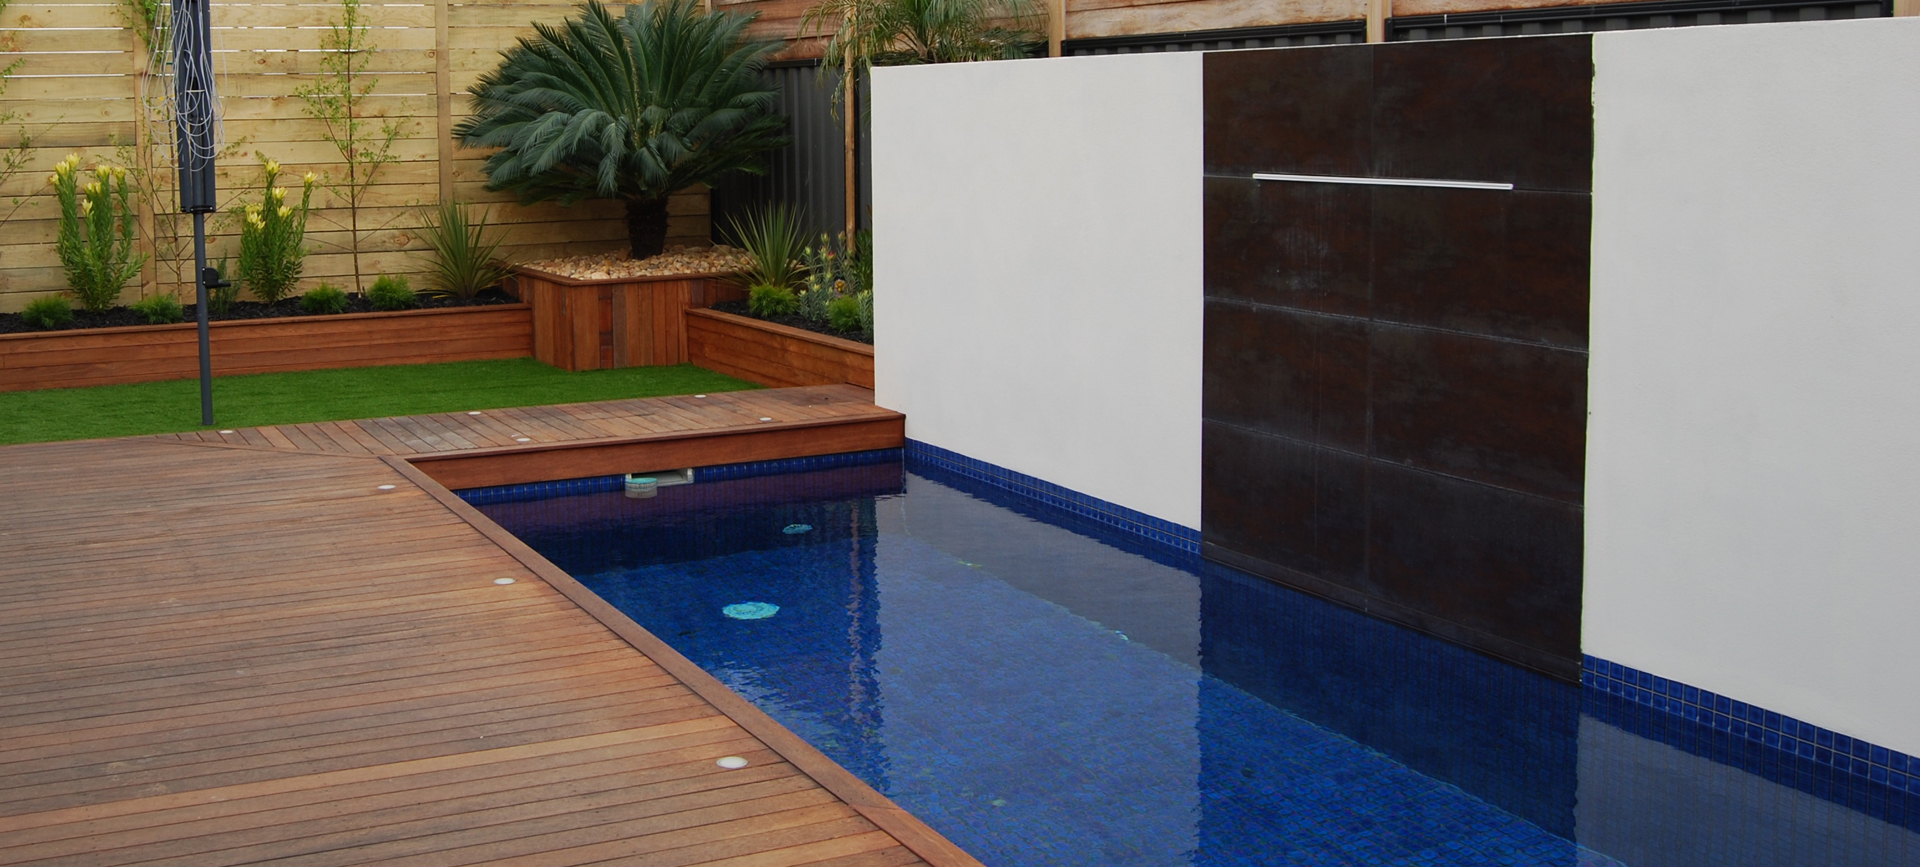 Tiling Commercial | Pool Renovation | On Time Developments